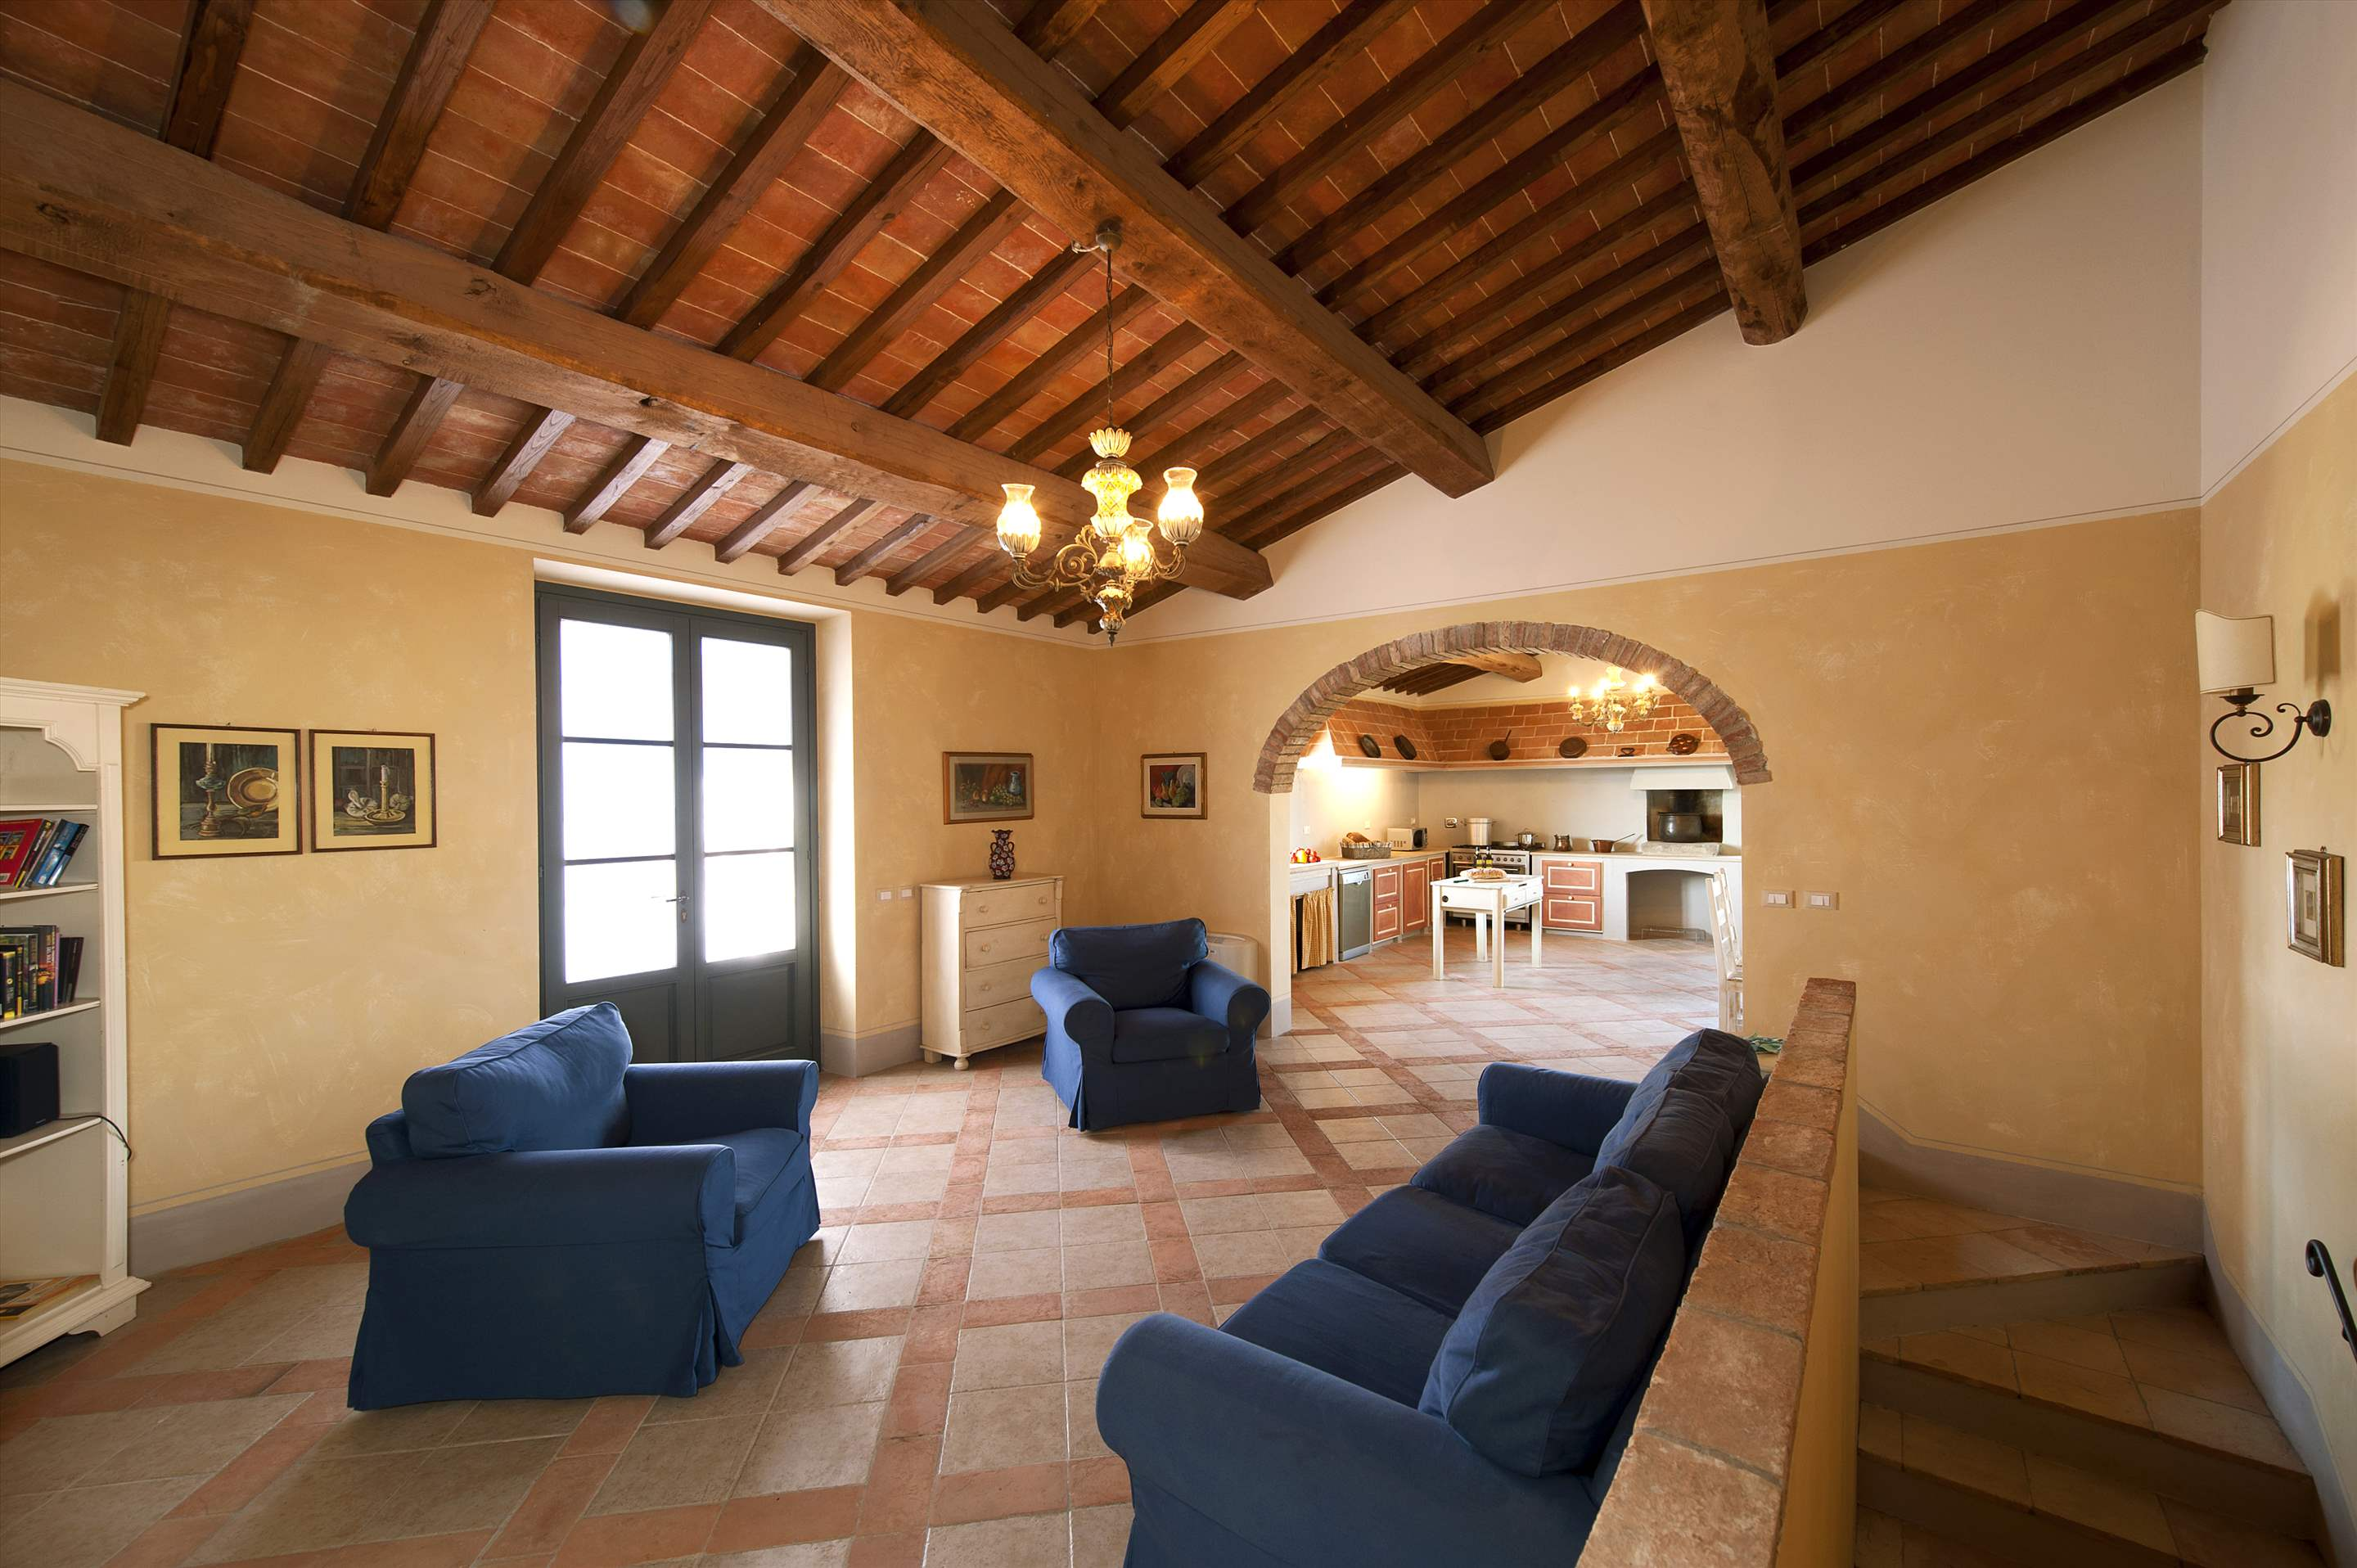 Podere Di Collina, First Floor, 4 bedroom villa in Tuscany Coast, Tuscany Photo #12